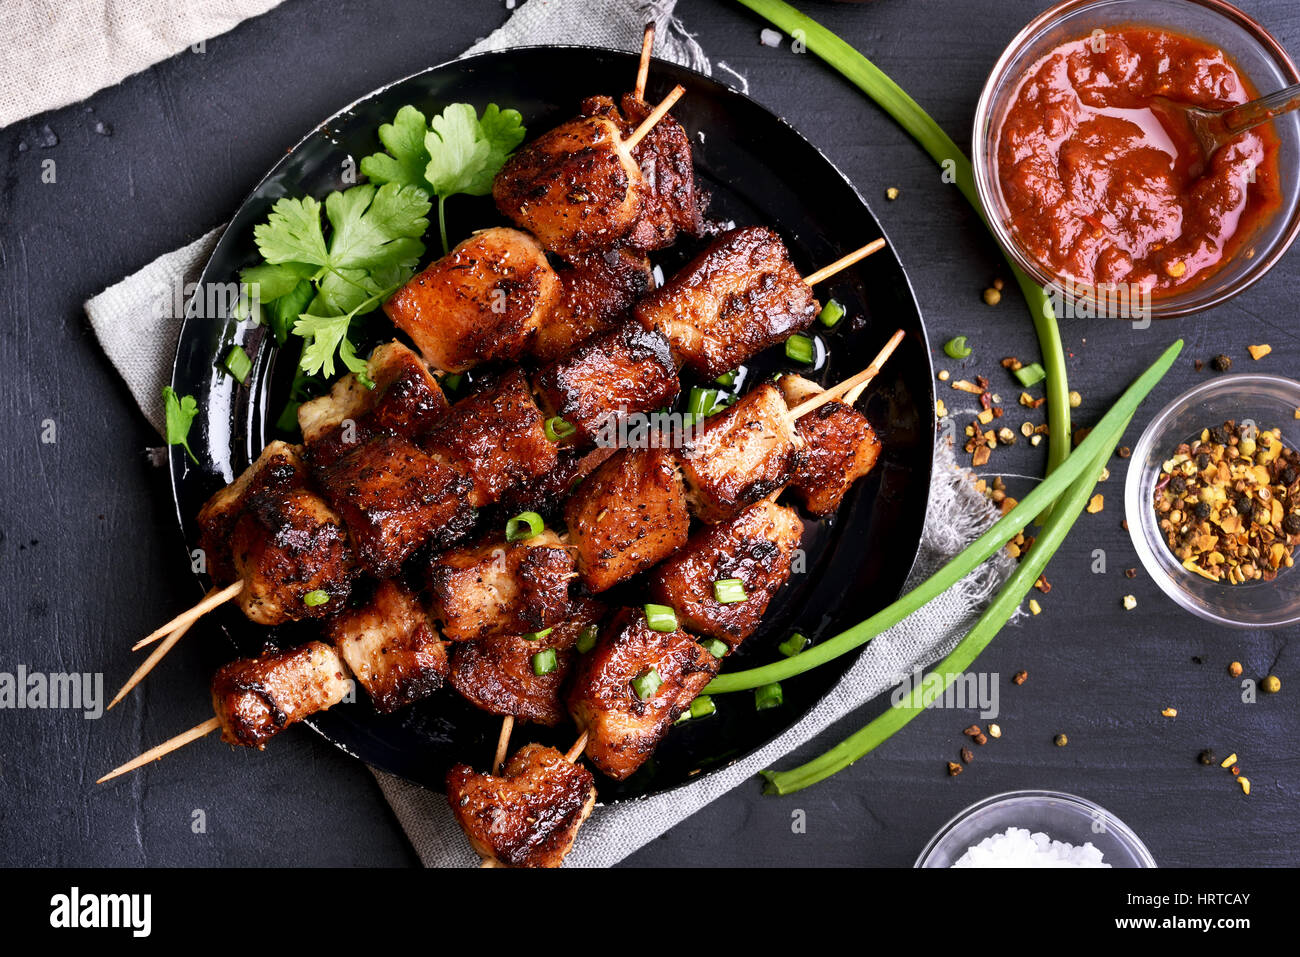 Bbq meat on wooden skewers on plate, top view - Stock Image